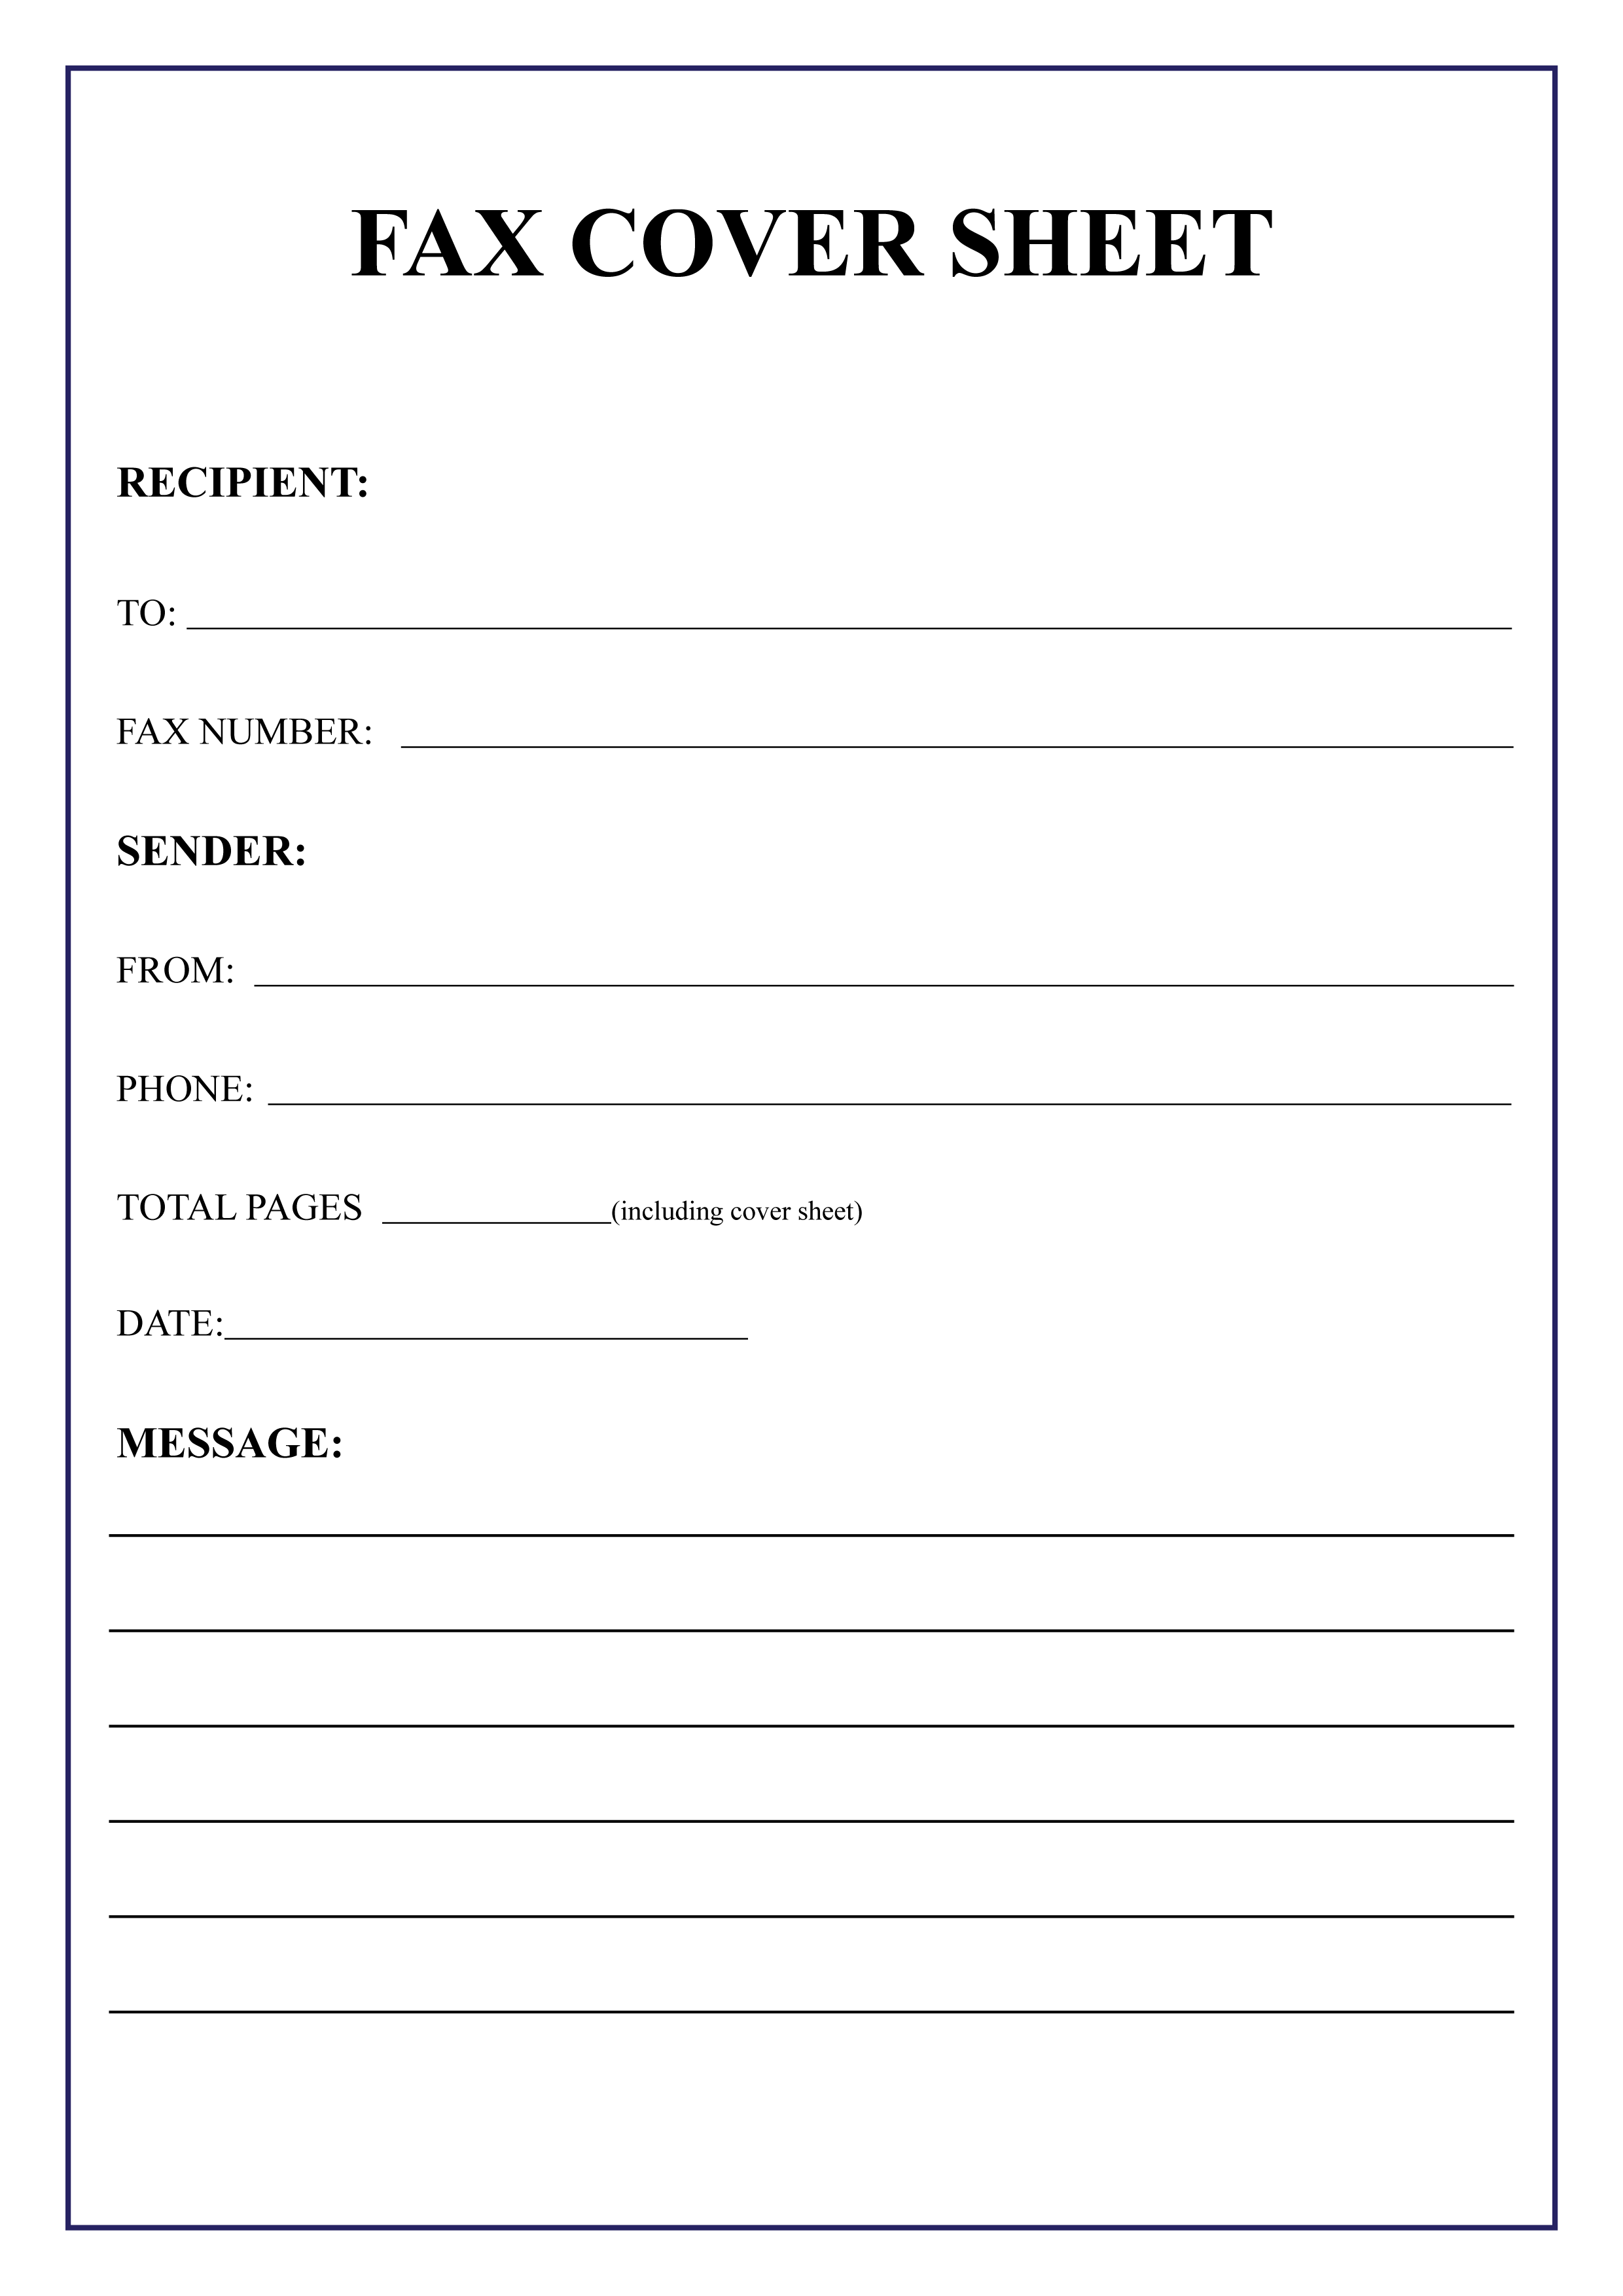 Free Printable Fax Cover Sheet Template   Sample & Examples